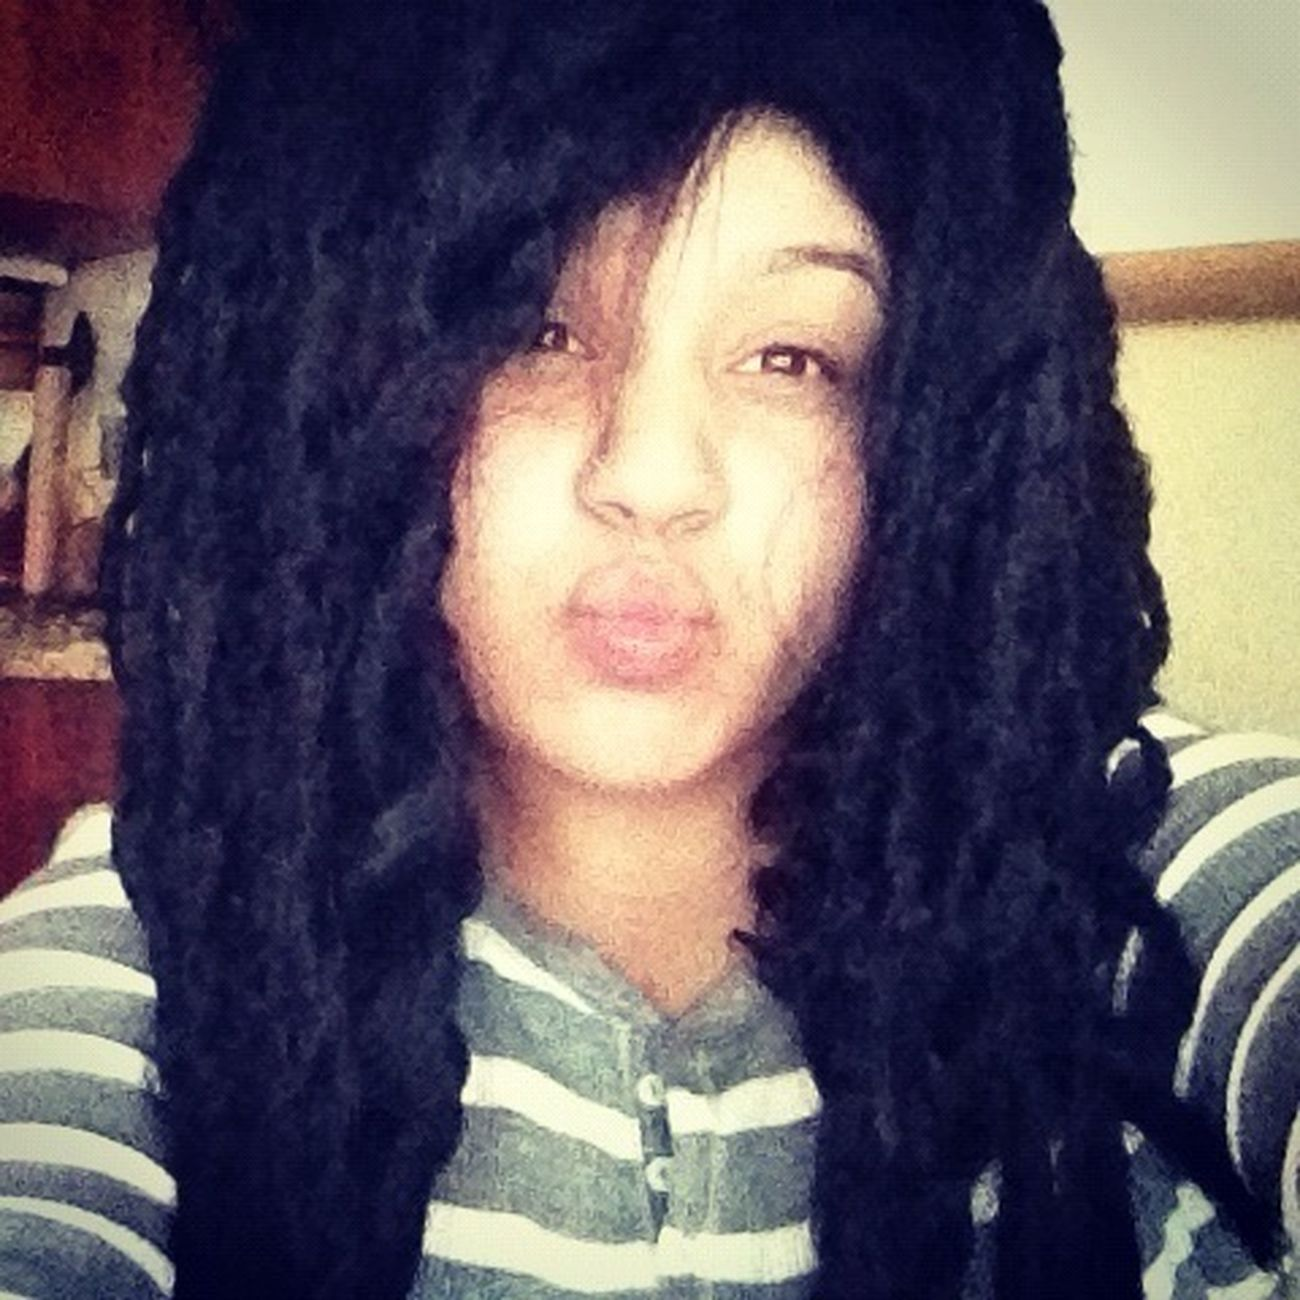 #Dread Head! Jk Jk But I Be Lookin Cute